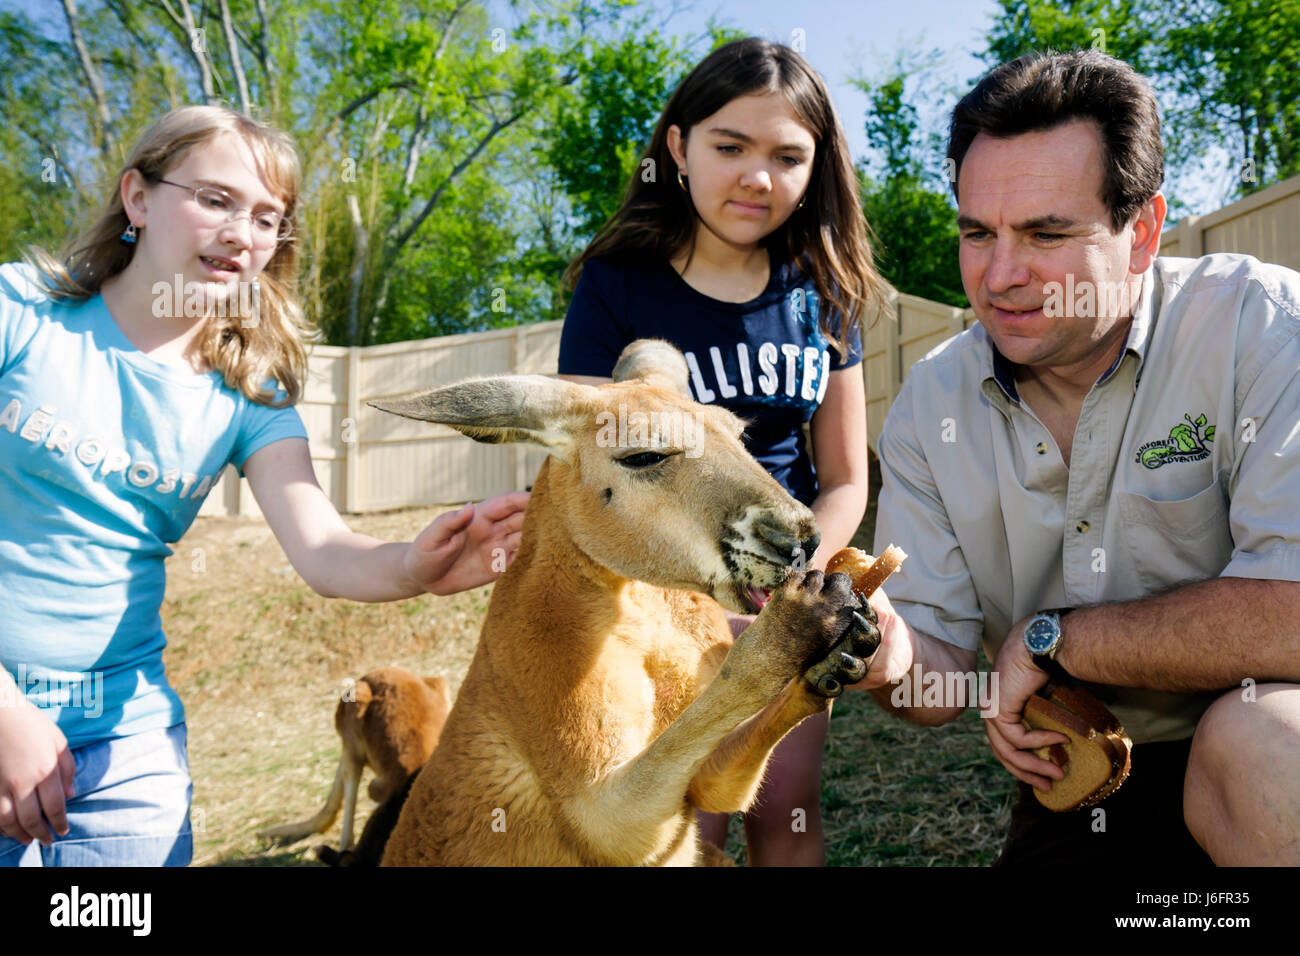 Tennessee Sevierville Rainforest AdventuresTropical Discovery Zoo kangaroo teen girls sisters father trainer feeding - Stock Image